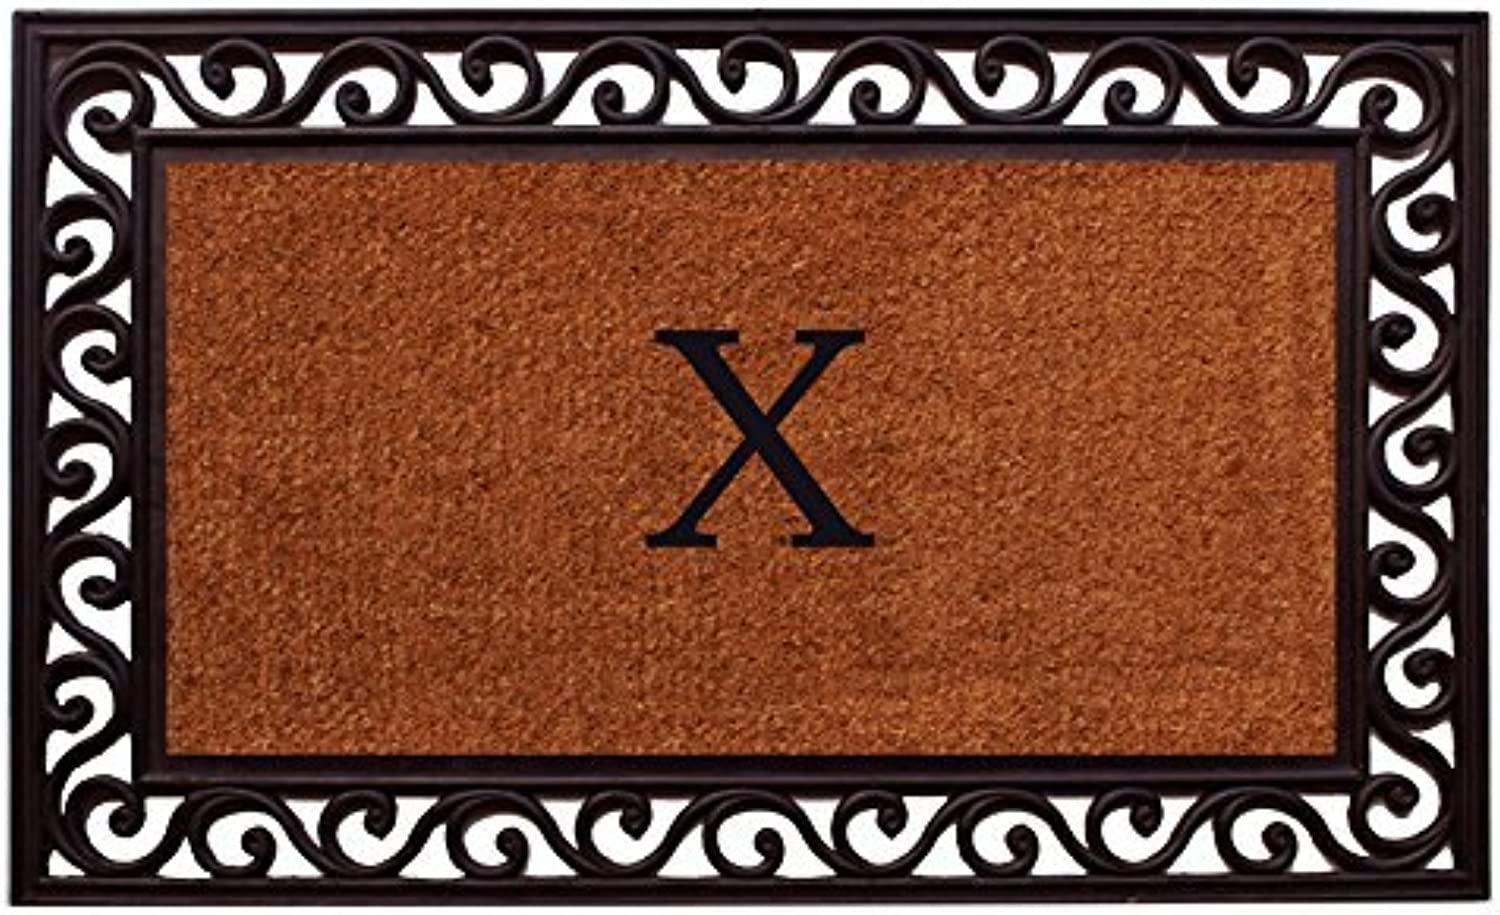 Home & More 100061830X Rembrandt Monogram Doormat 18-Inch X 30-Inch (Letter X)